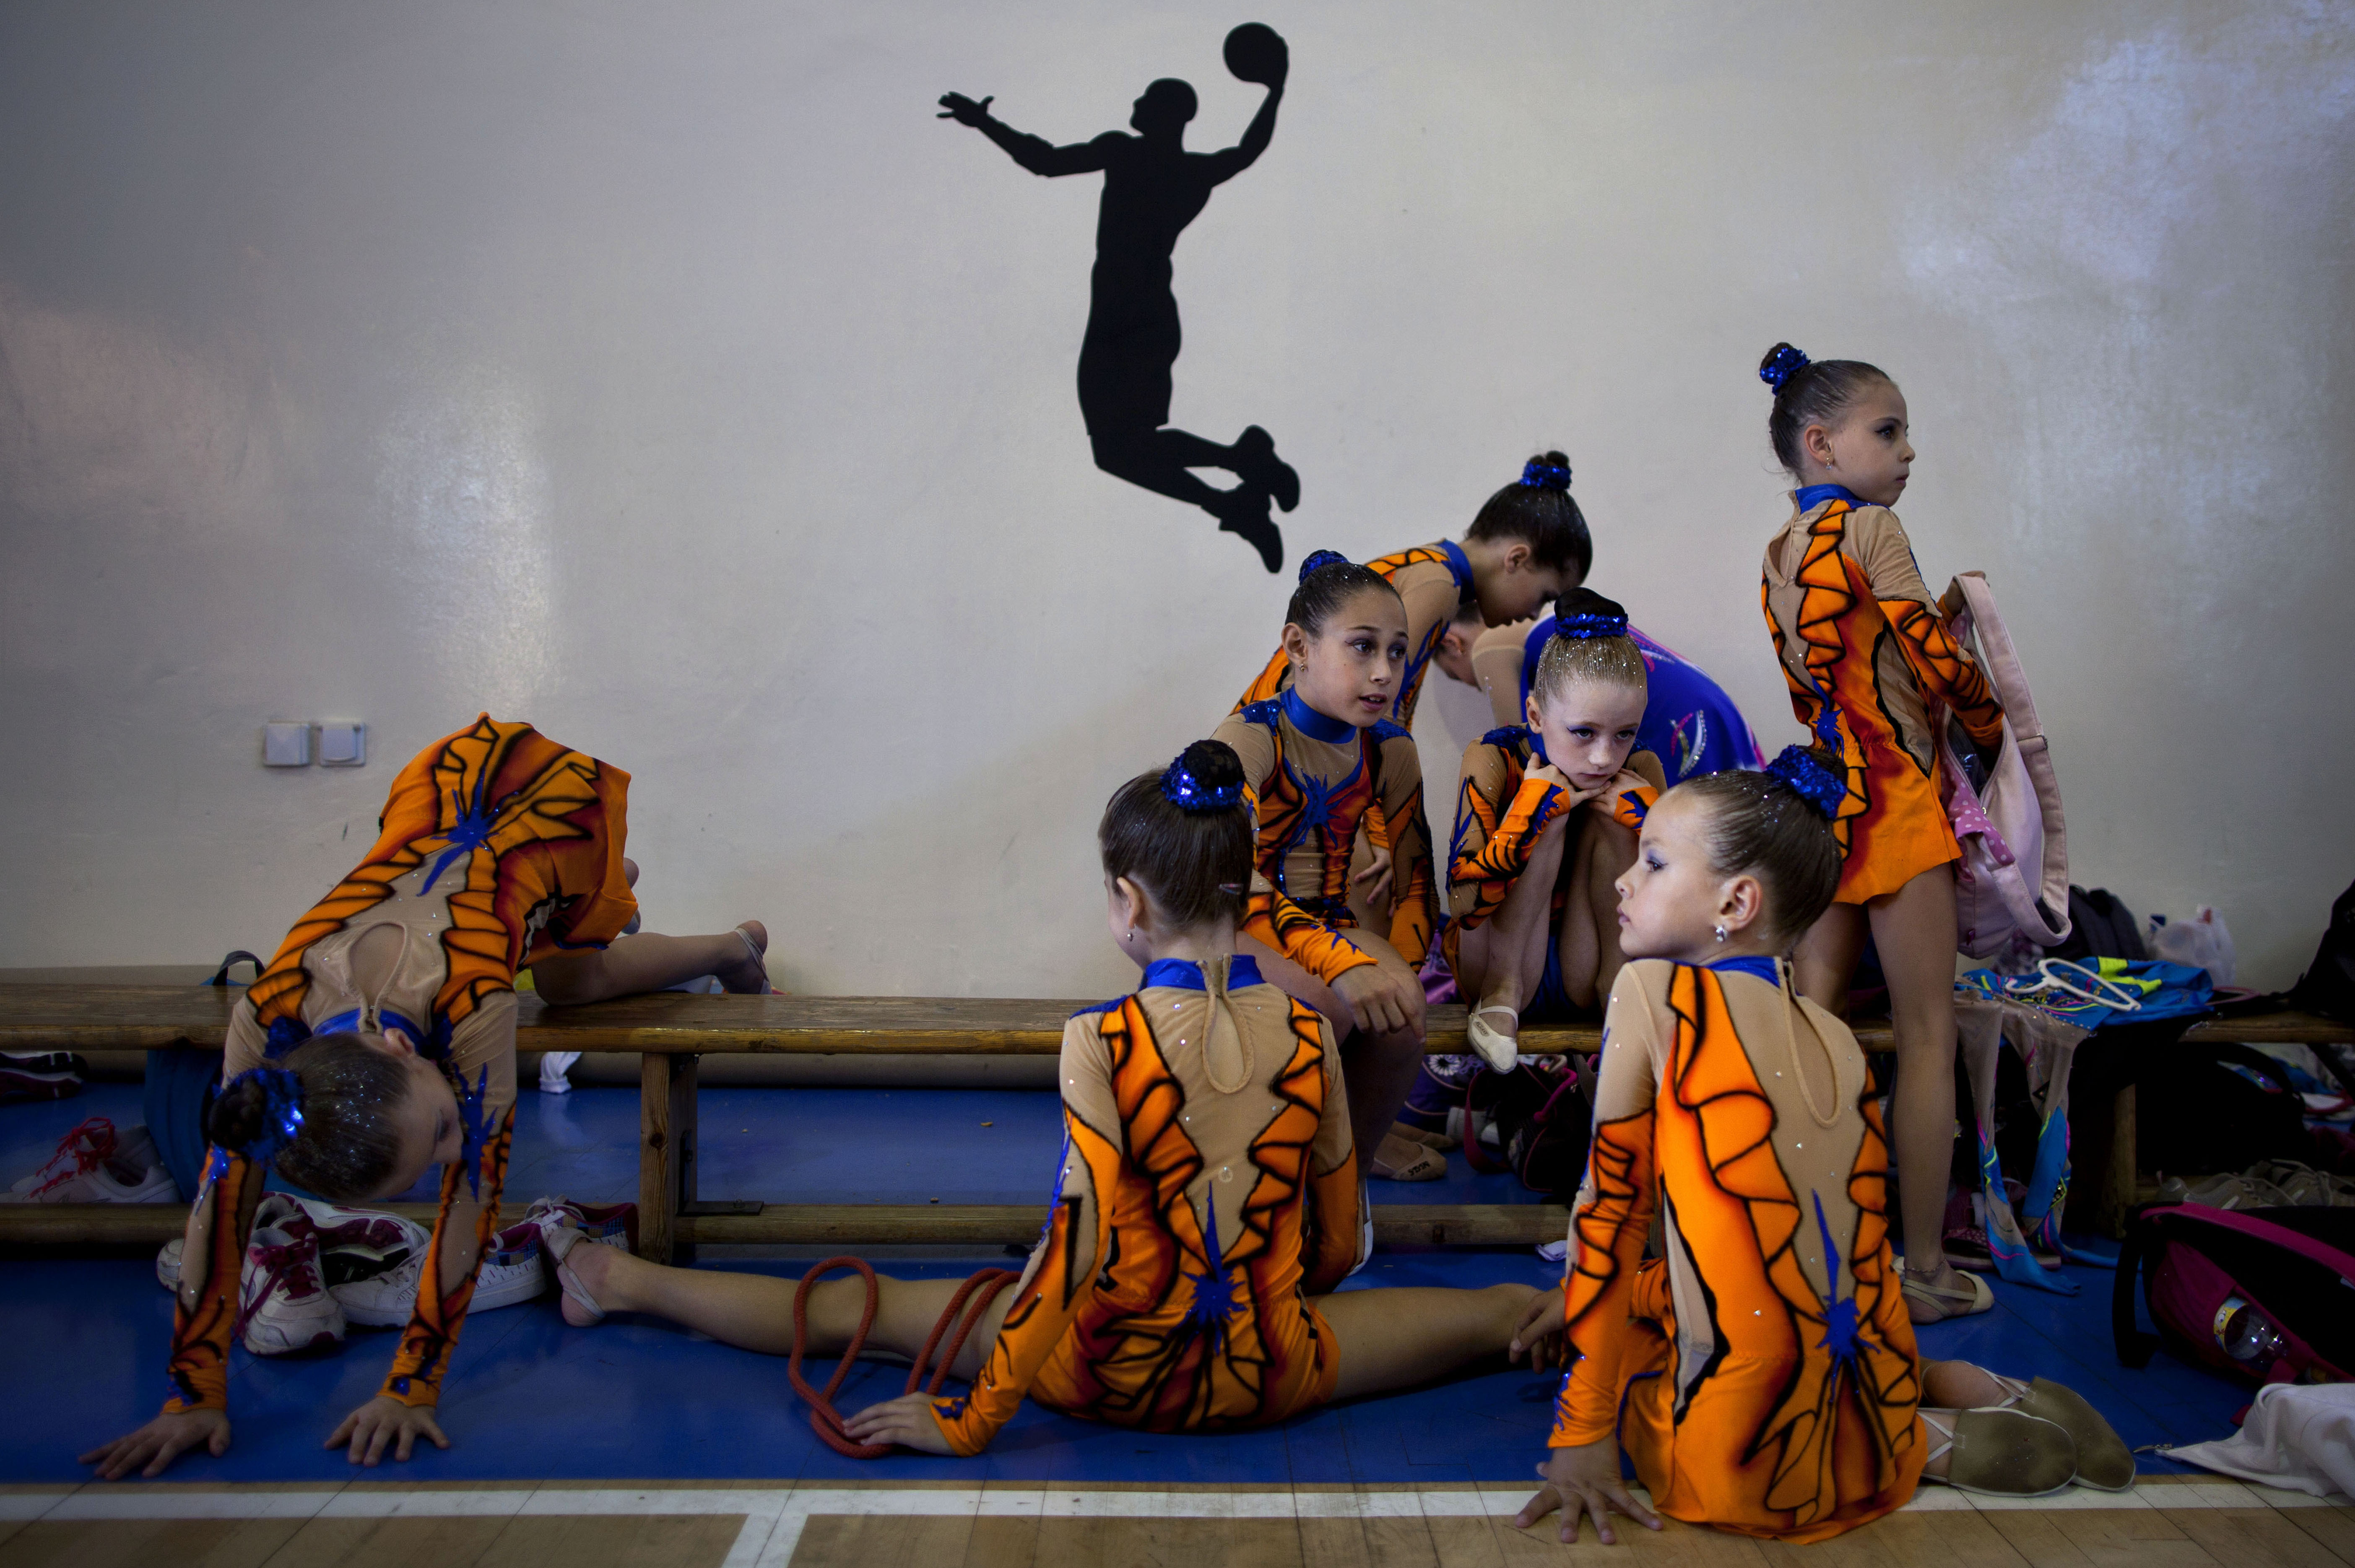 Gymnasts from Russian-speaking immigrant families warm up at a gymnastics competition organized for Israel's immigrant community, in the southern resort city of Eilat. Most of Israel's Olympic gymnasts are immigrants from the former Soviet Union.